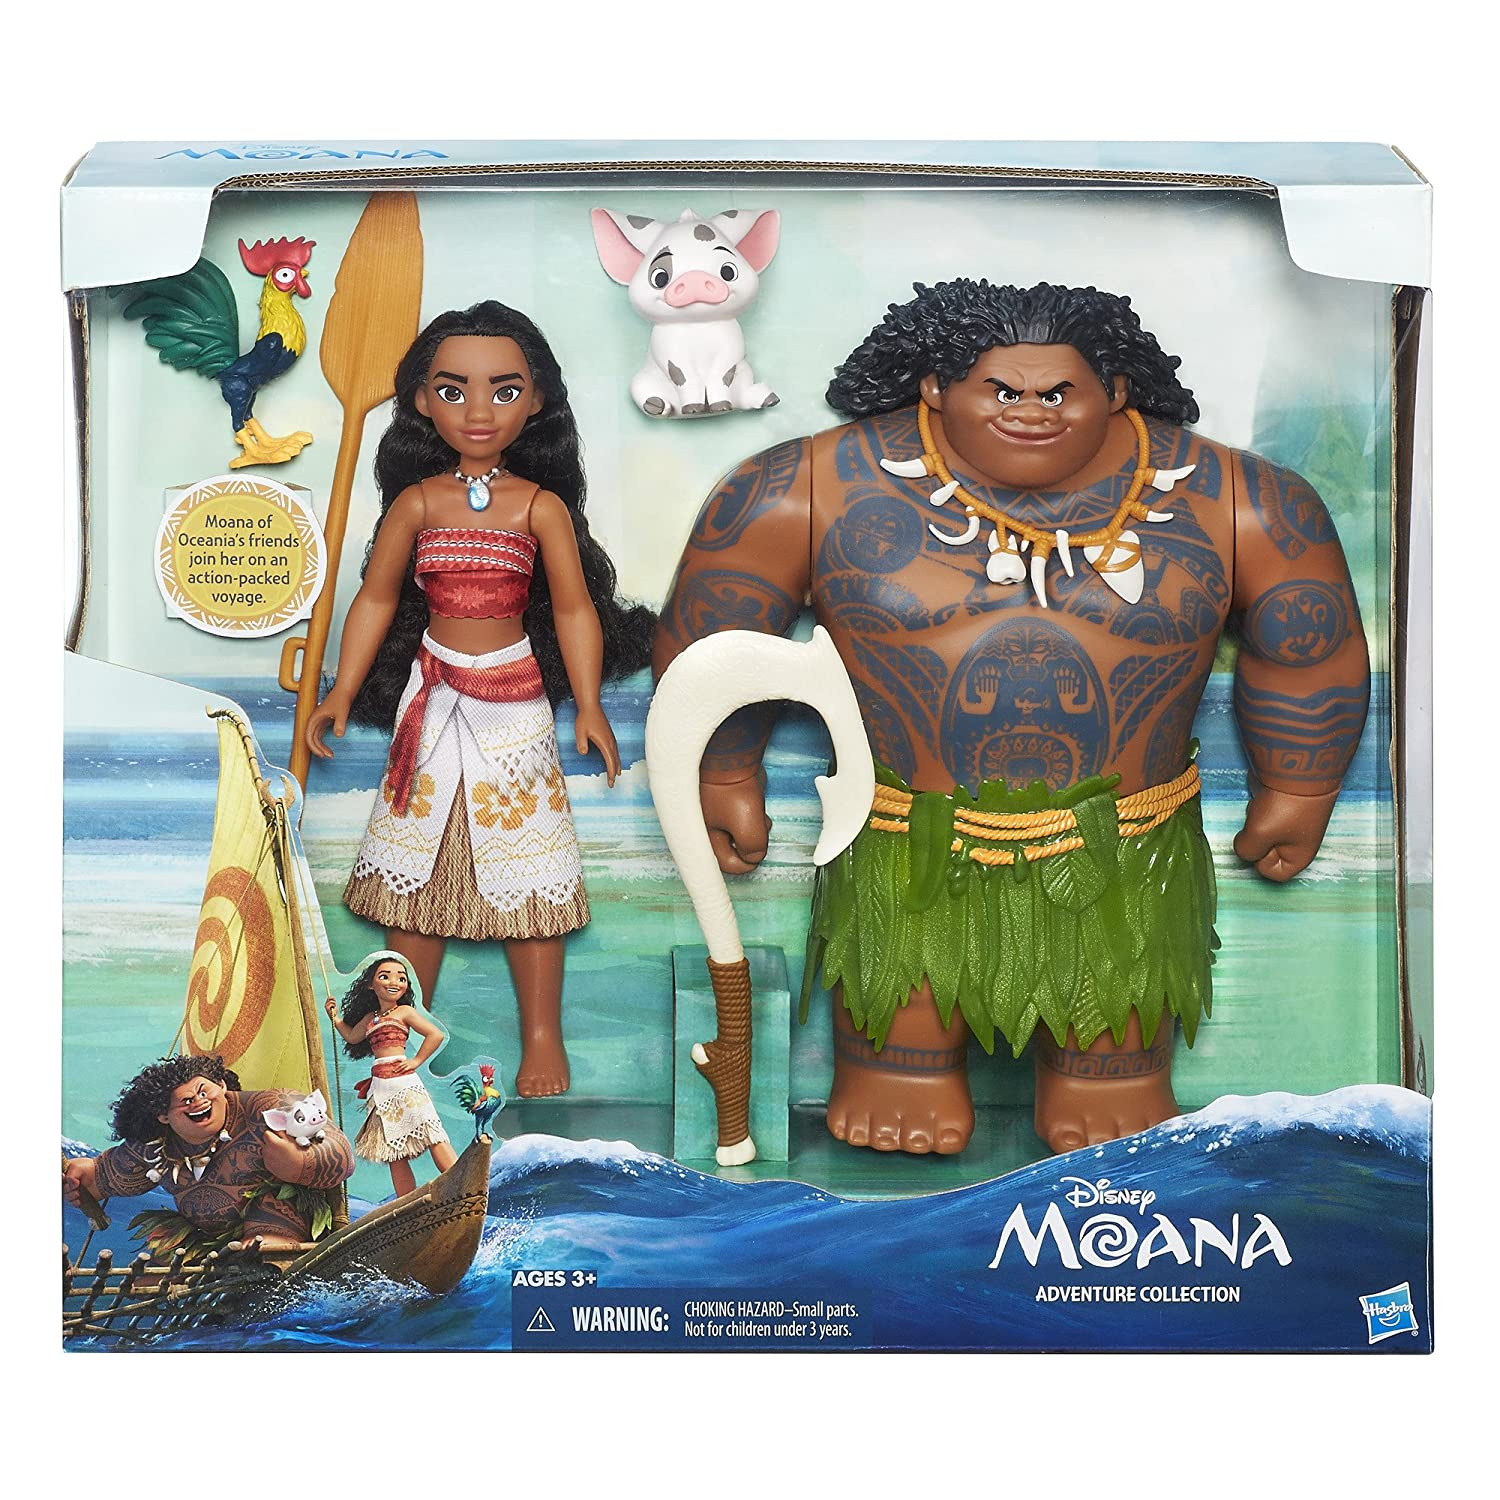 Amazon Disney Moana Adventure Collection Toys & Games